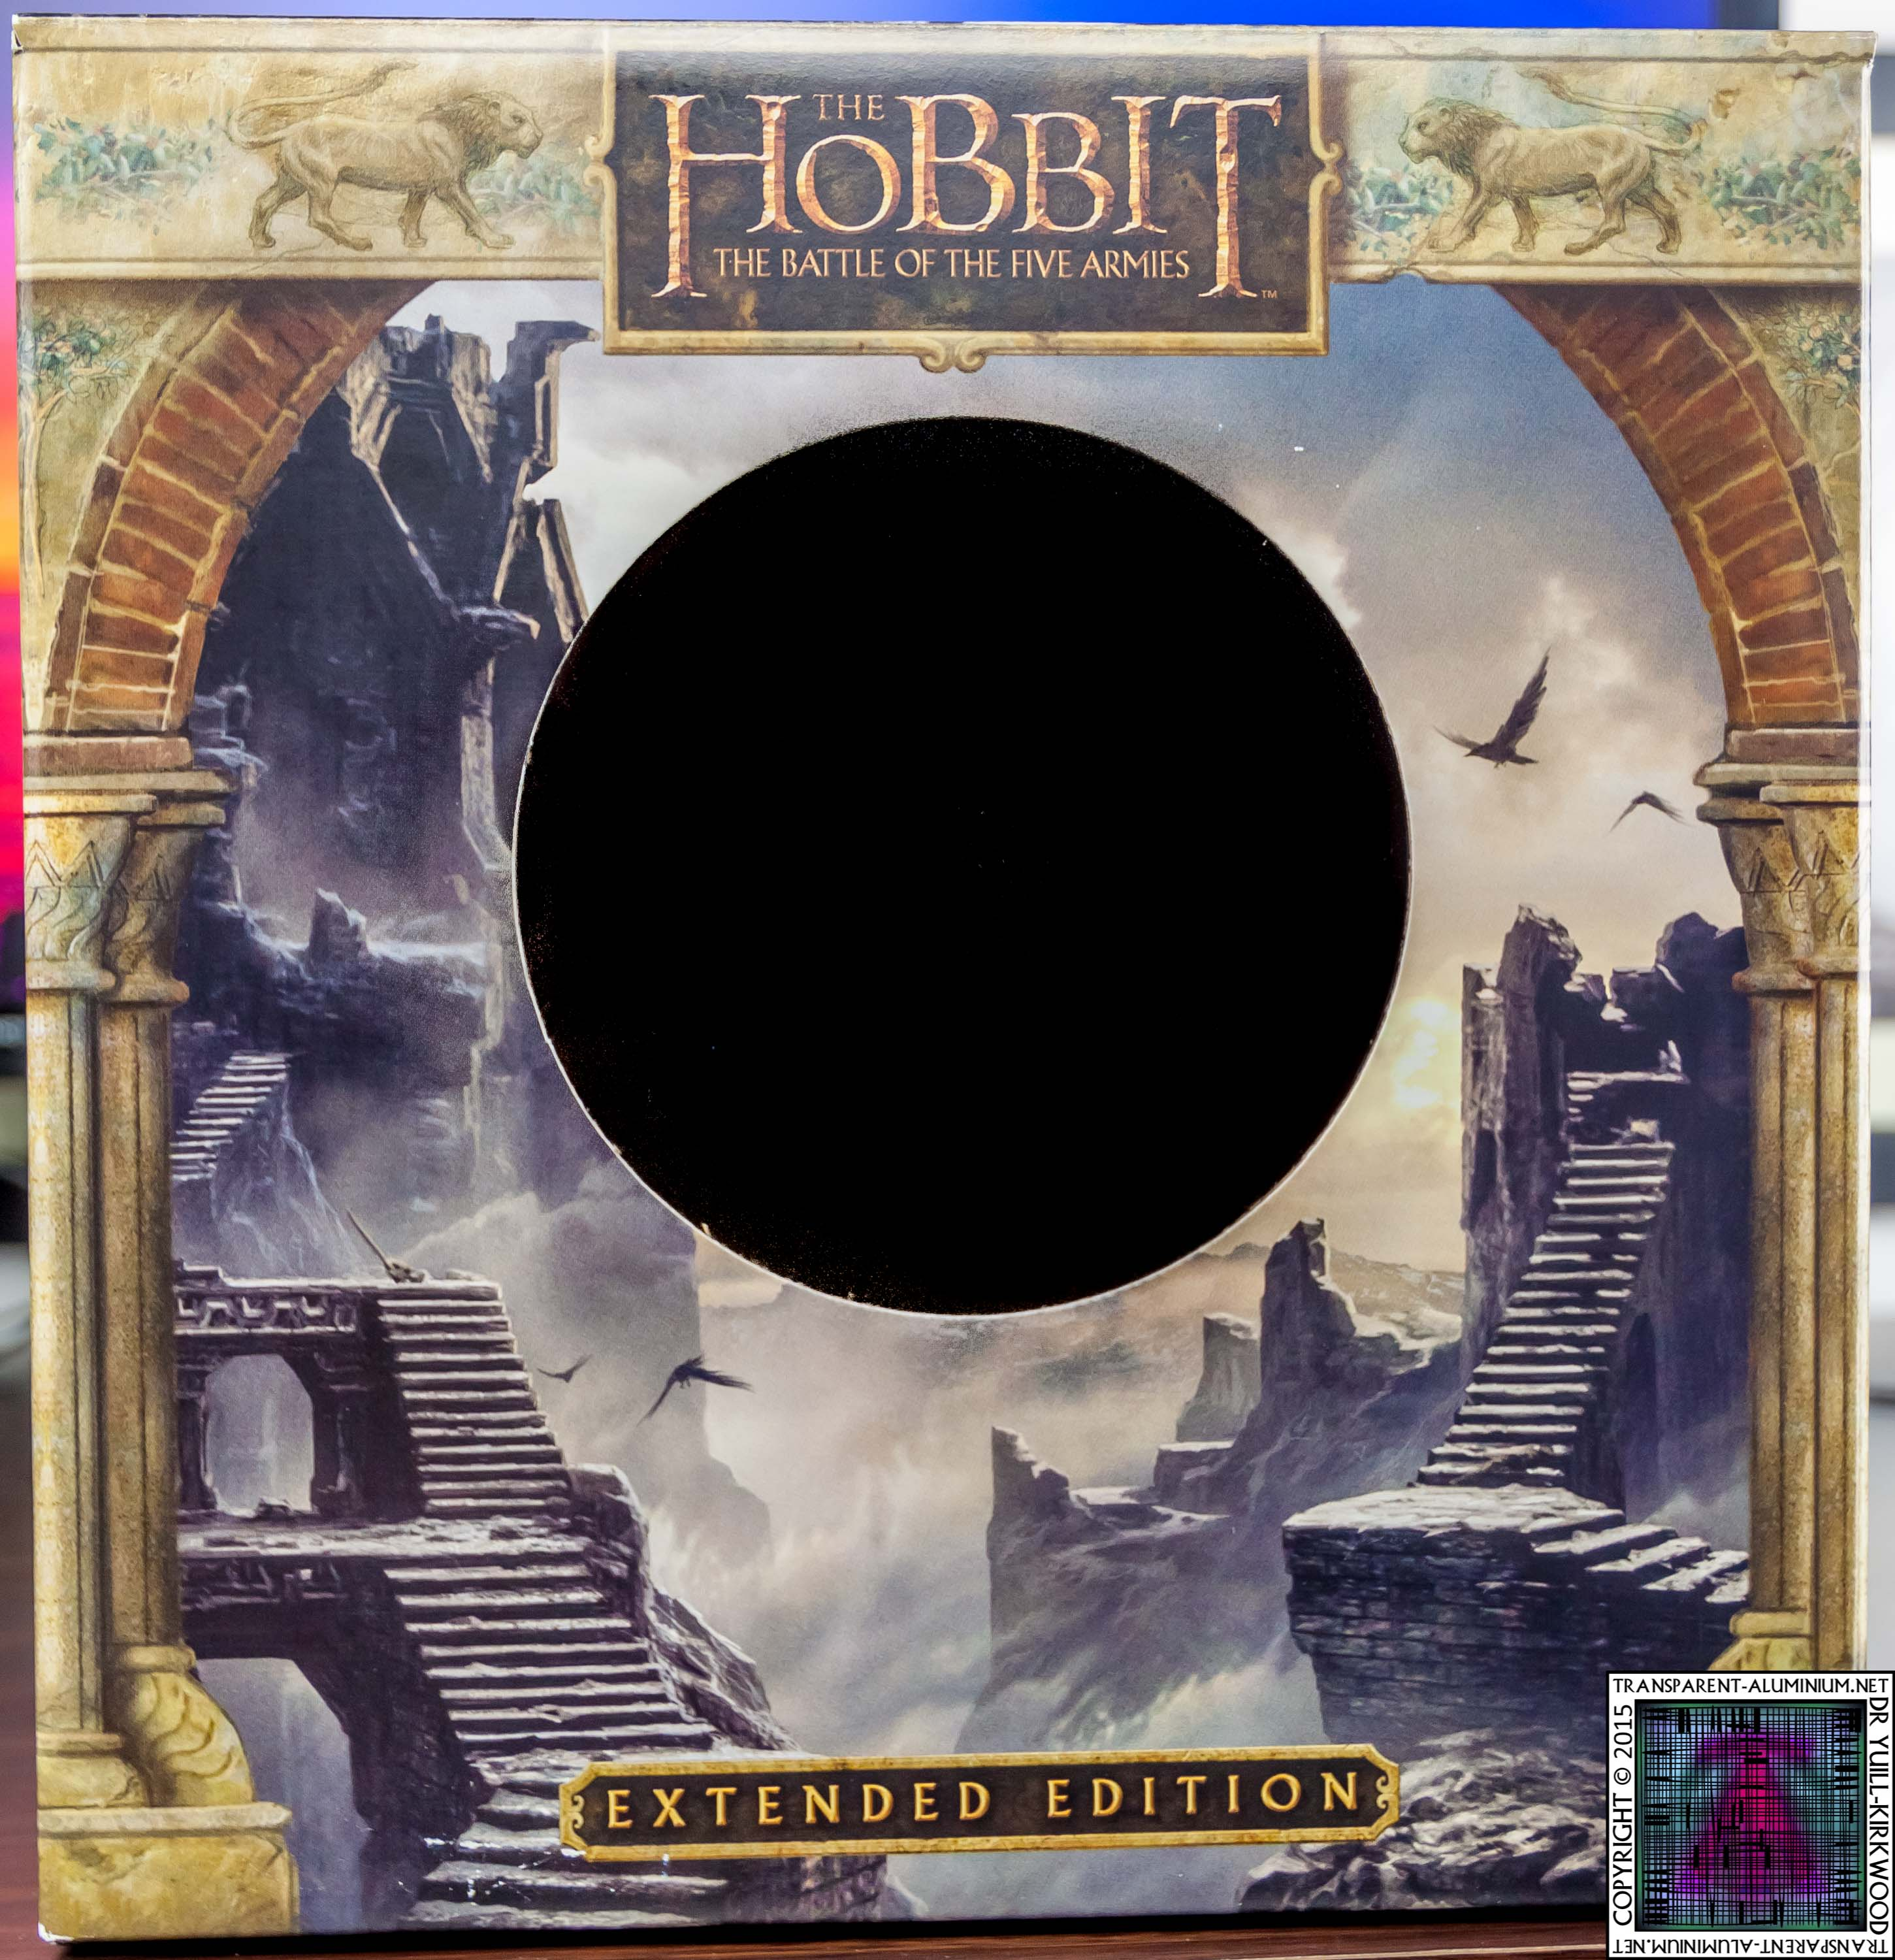 reflection on the hobbit It's the second half of february now the hobbit: the battle of the five armies  has all but disappeared from cinemas in the usa and many other.